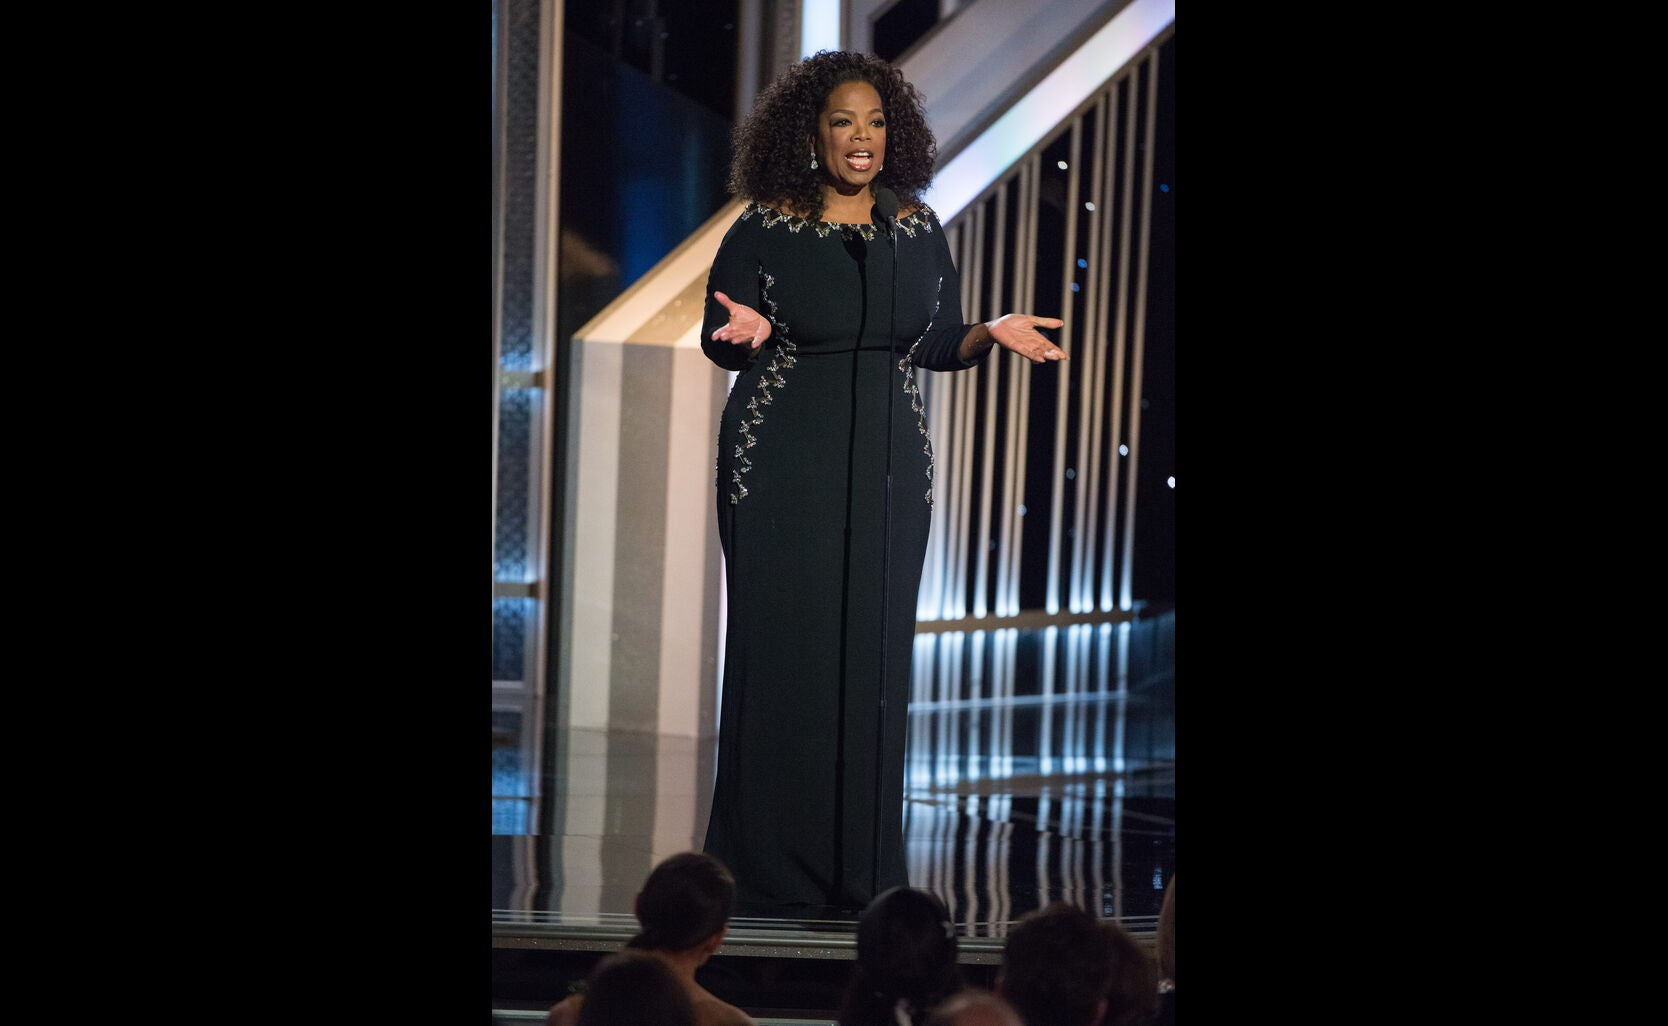 Oprah Winfrey Presnet at the 2015 Golden Globe Awards